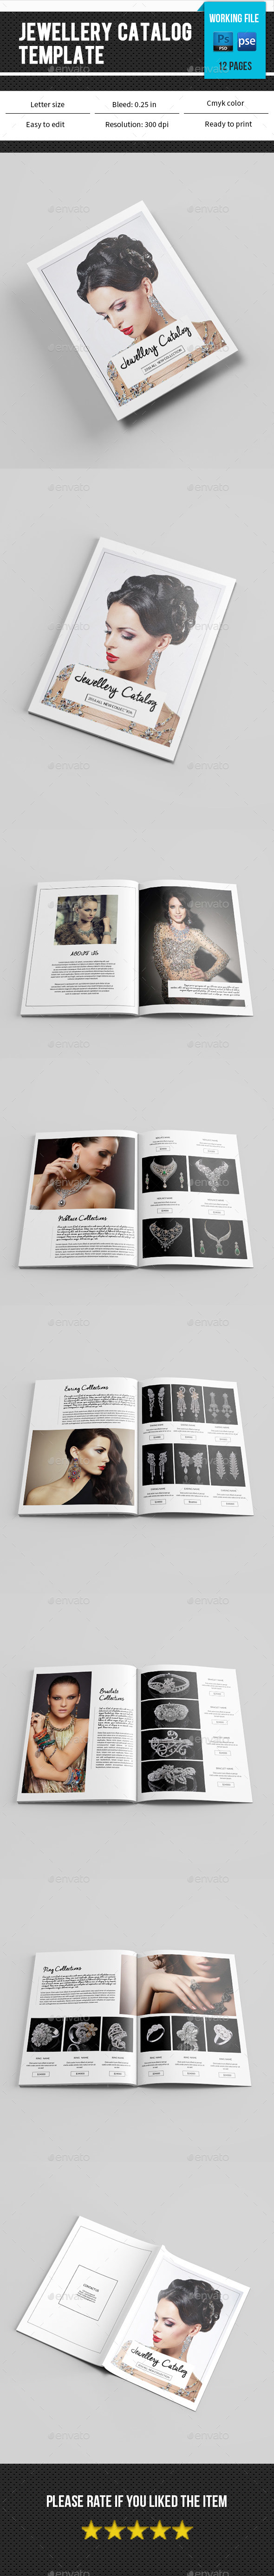 Delighted 10 Best Resume Designs Huge 100 Free Resume Builder And Download Square 100 Template 18th Birthday Invitations Templates Young 2 Binder Spine Template Yellow2 Weeks Notice Template Catalog Templates From GraphicRiver